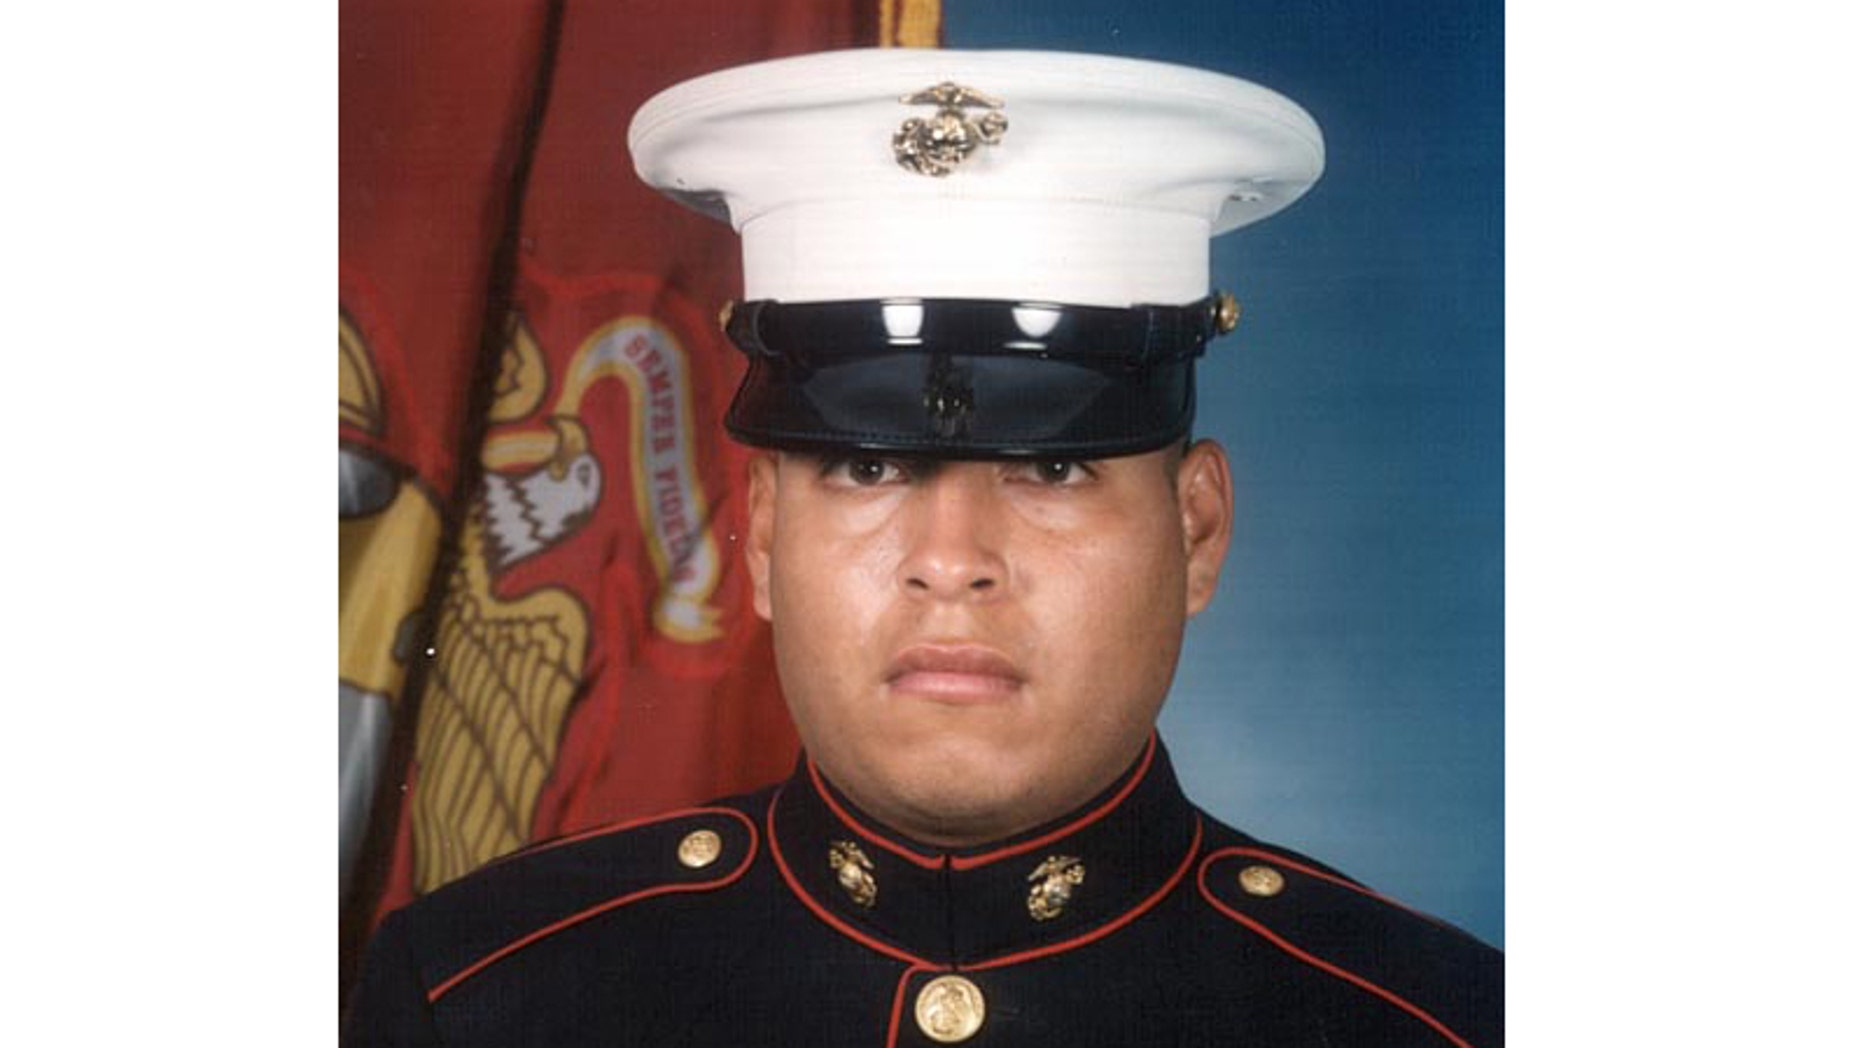 Sgt. Rafael Peralta, 25. Peralta was being considered for a posthumous Medal of Honor, the United States' highest military award.